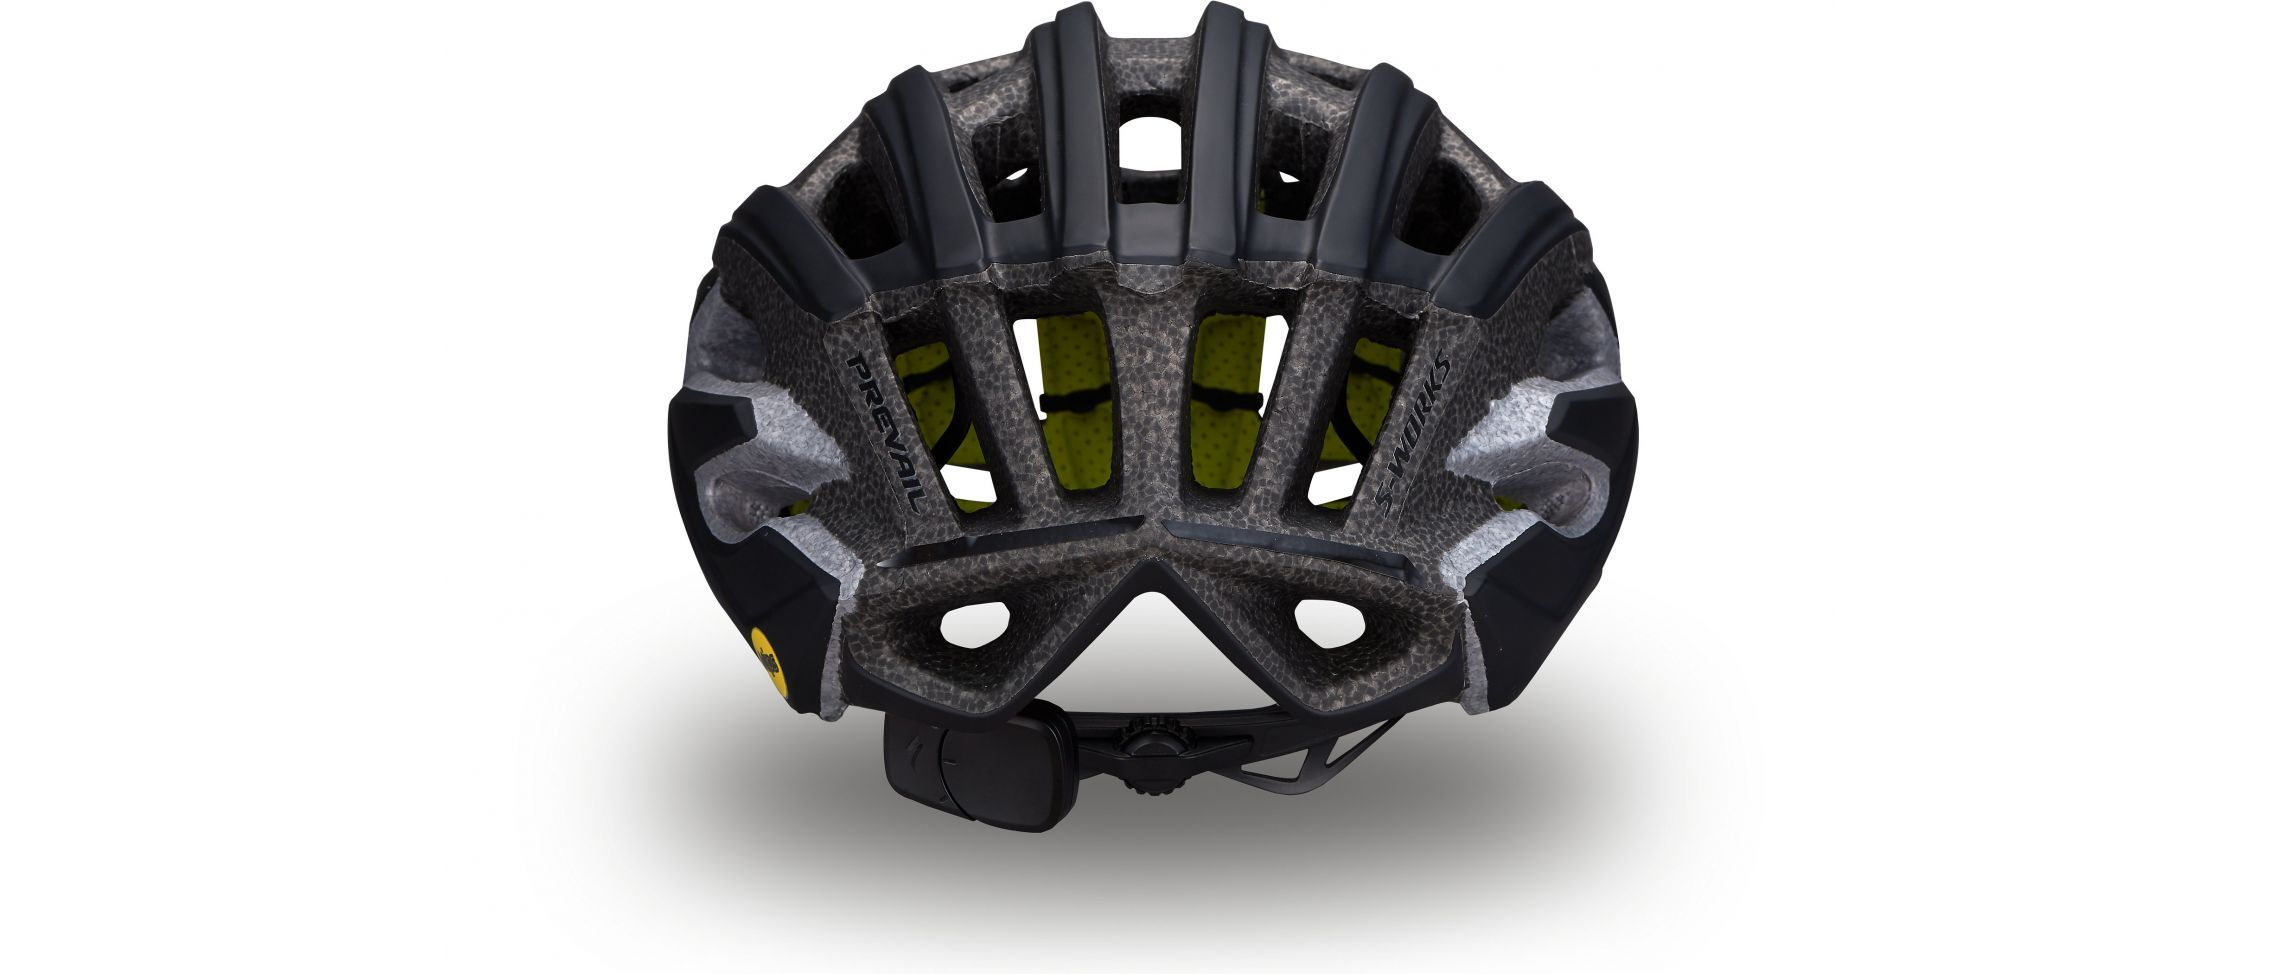 S-Works Prevail II Mips Casco Ciclismo Carretera Specialized Negro Mate 4 IBKBike.es